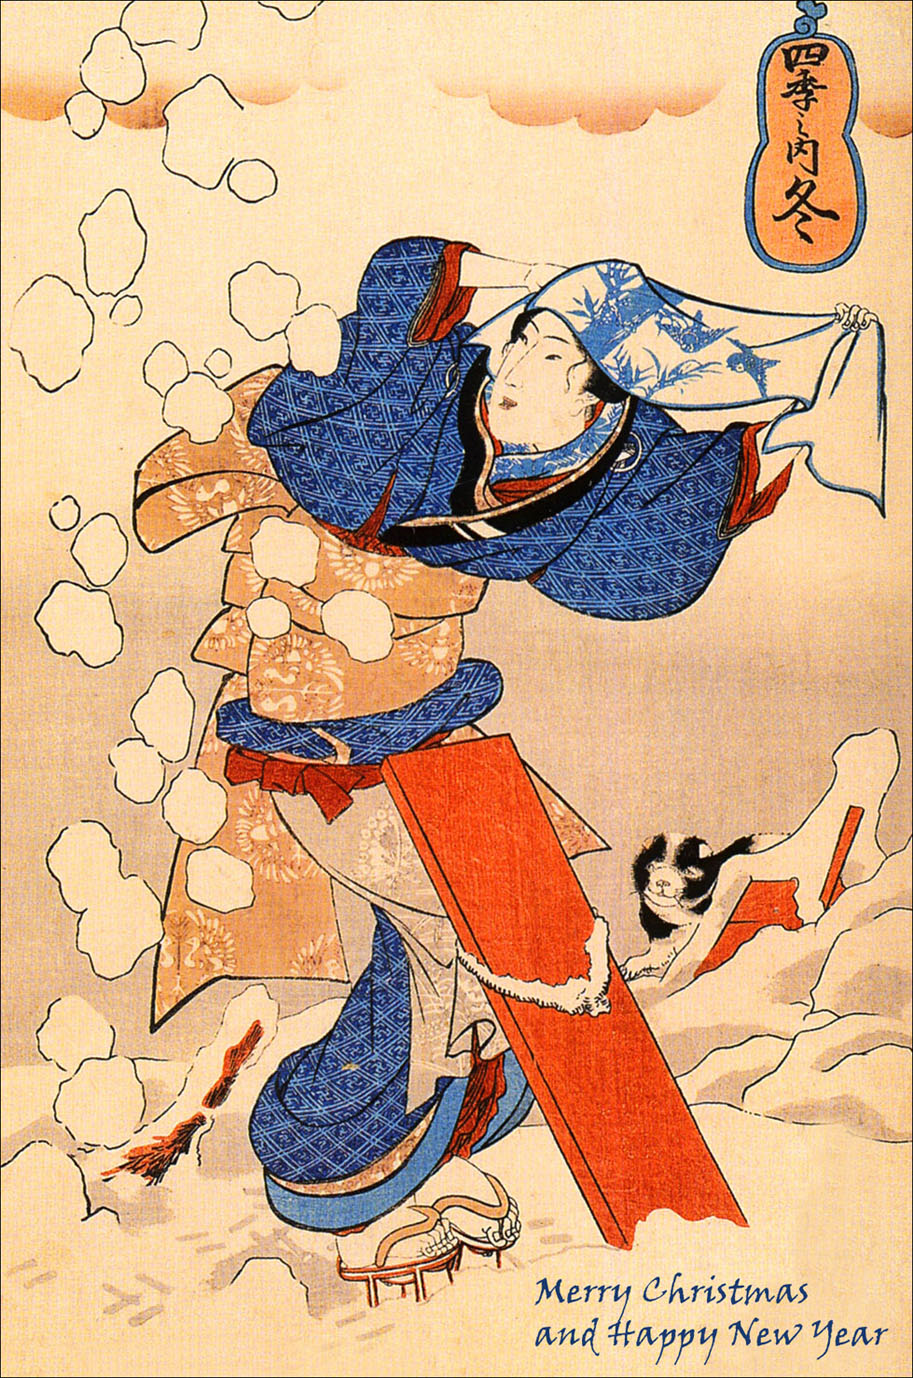 japanese woman and dog in snow by kuniyoshi utagawa xmas and new year card